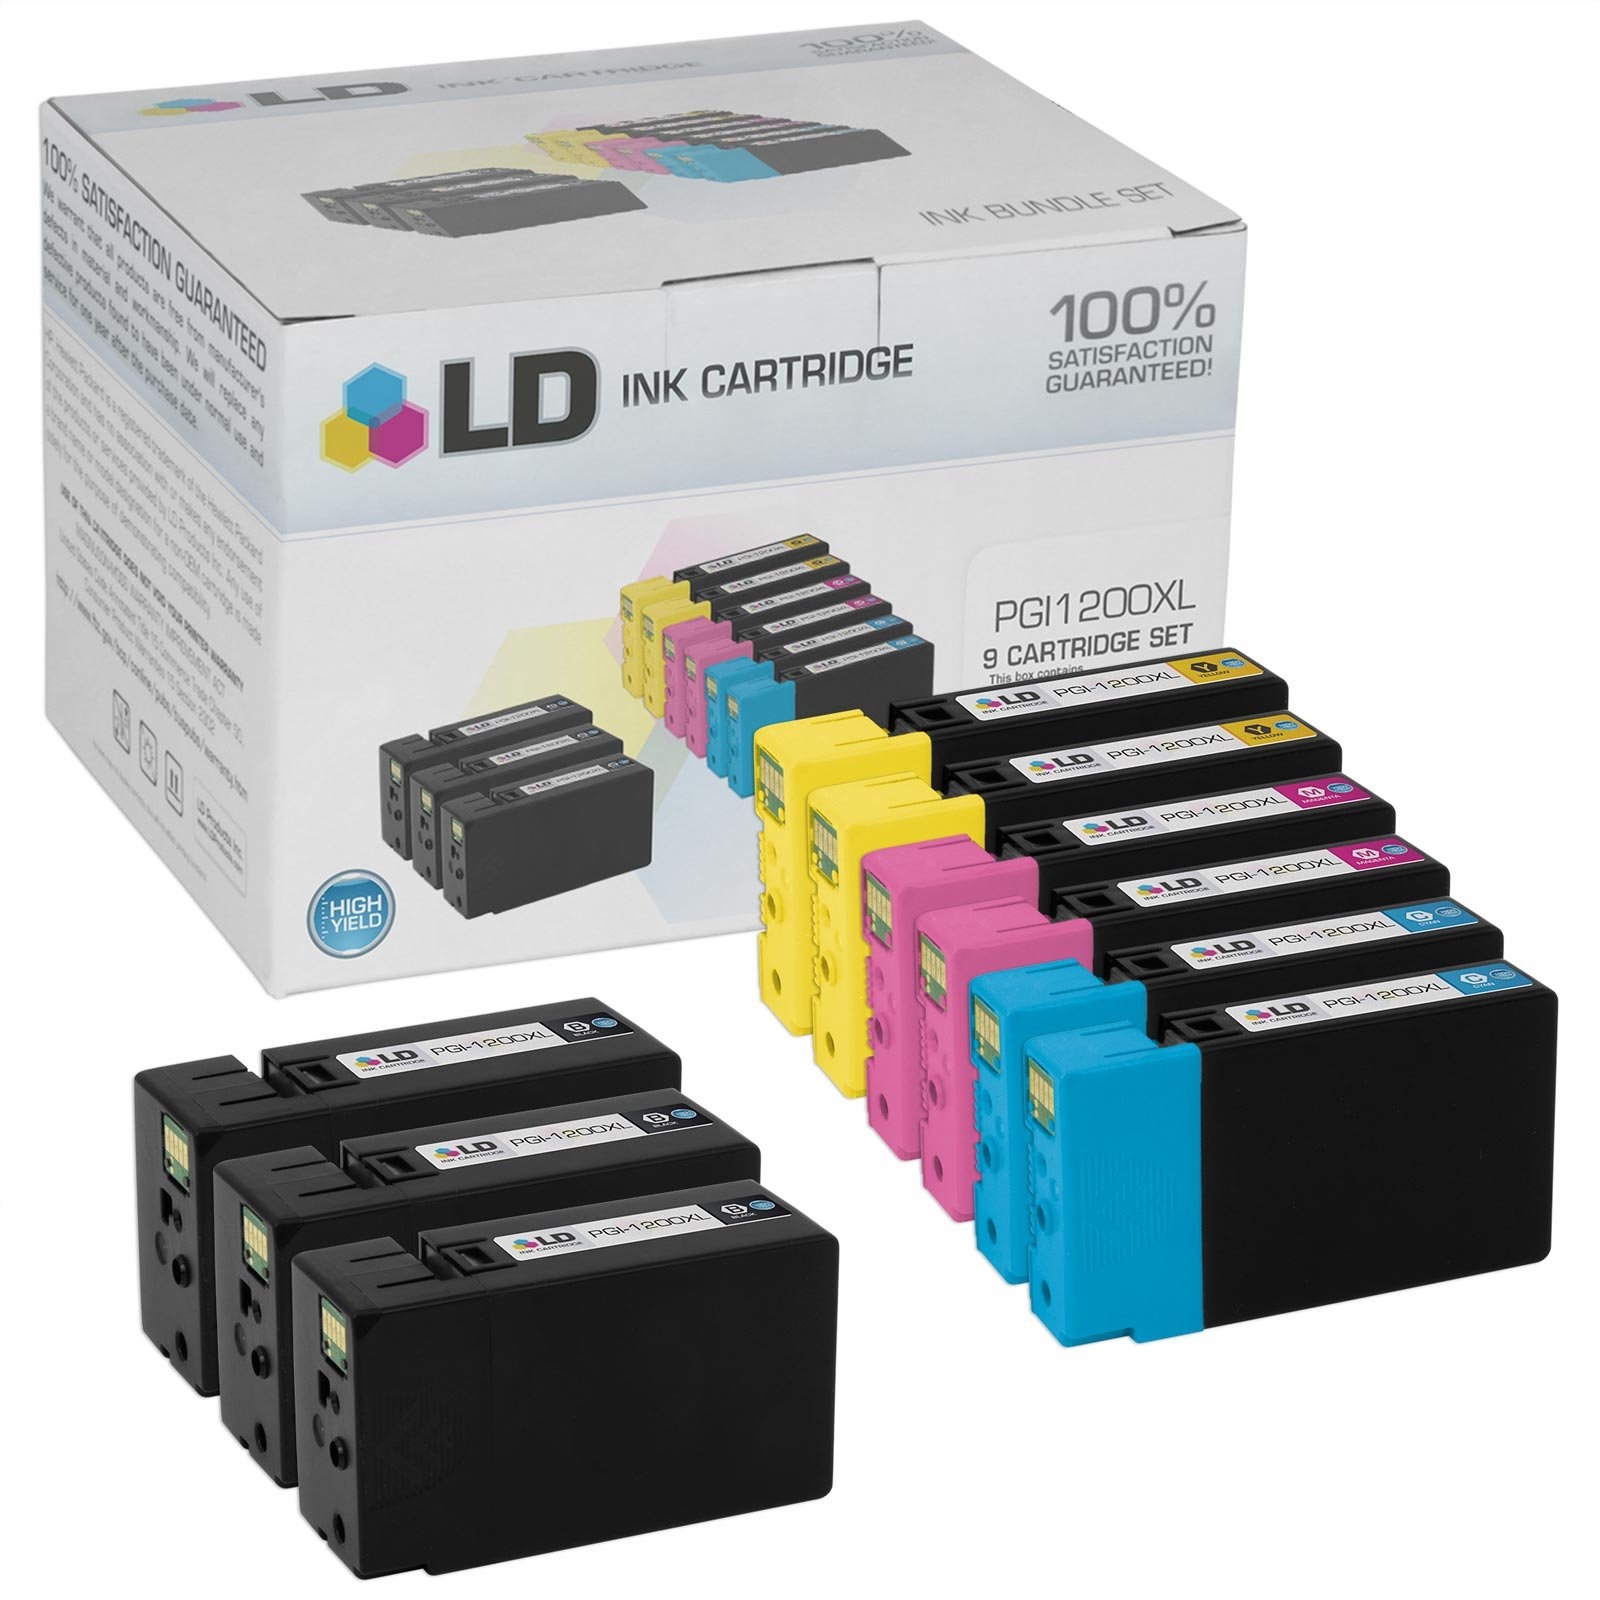 LD Compatible Ink Cartridge Replacement for Canon PGI-1200XL High Yield (3 Black, 2 Cyan, 2 Magenta, 2 Yellow, 9-Pack)